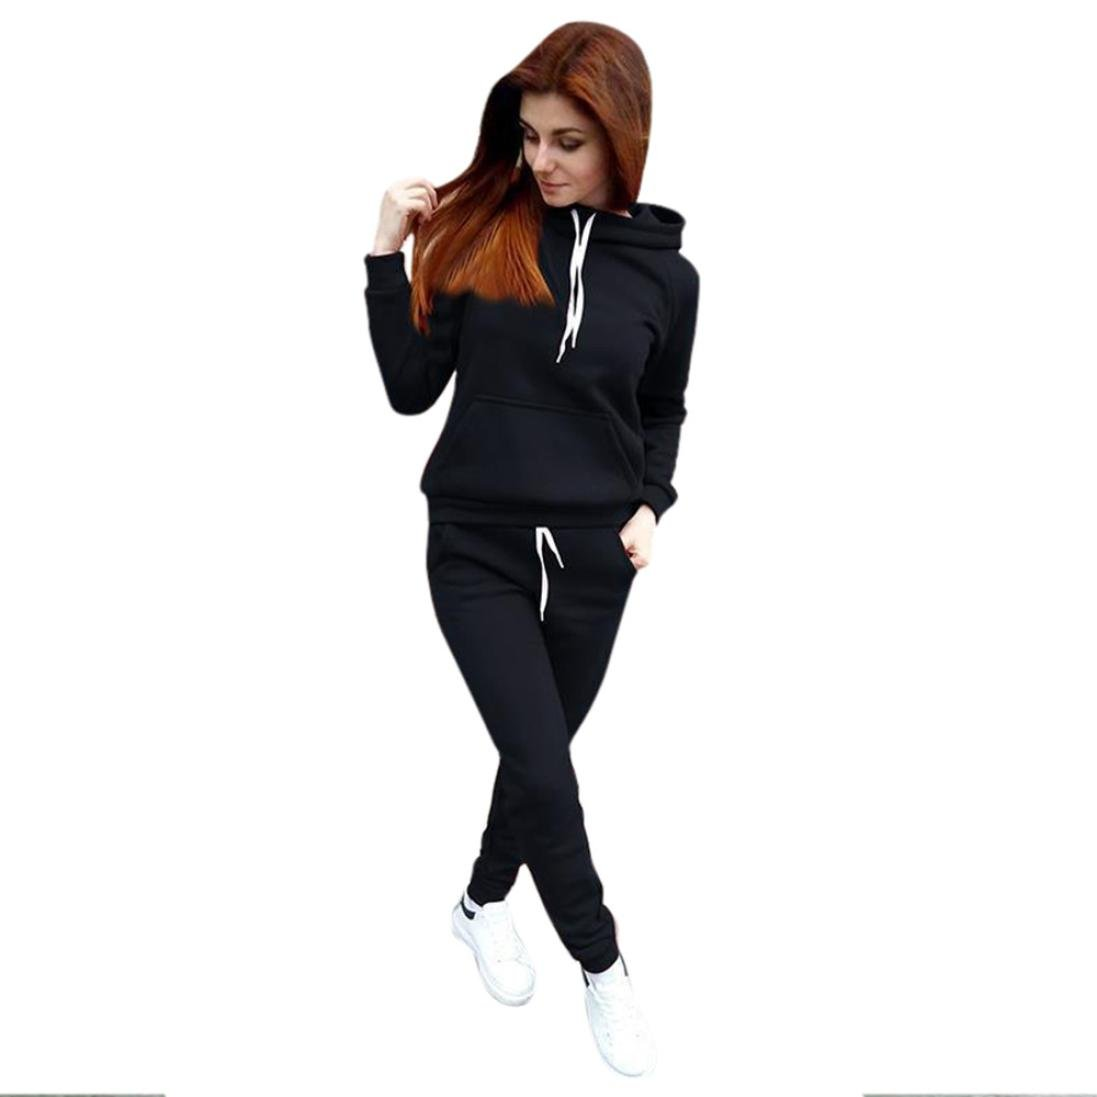 Challyhope Tracksuit, Women Casual Sweatshirt Hoodie + Sweatpants Two-Pieces Outfit (Black, XL)